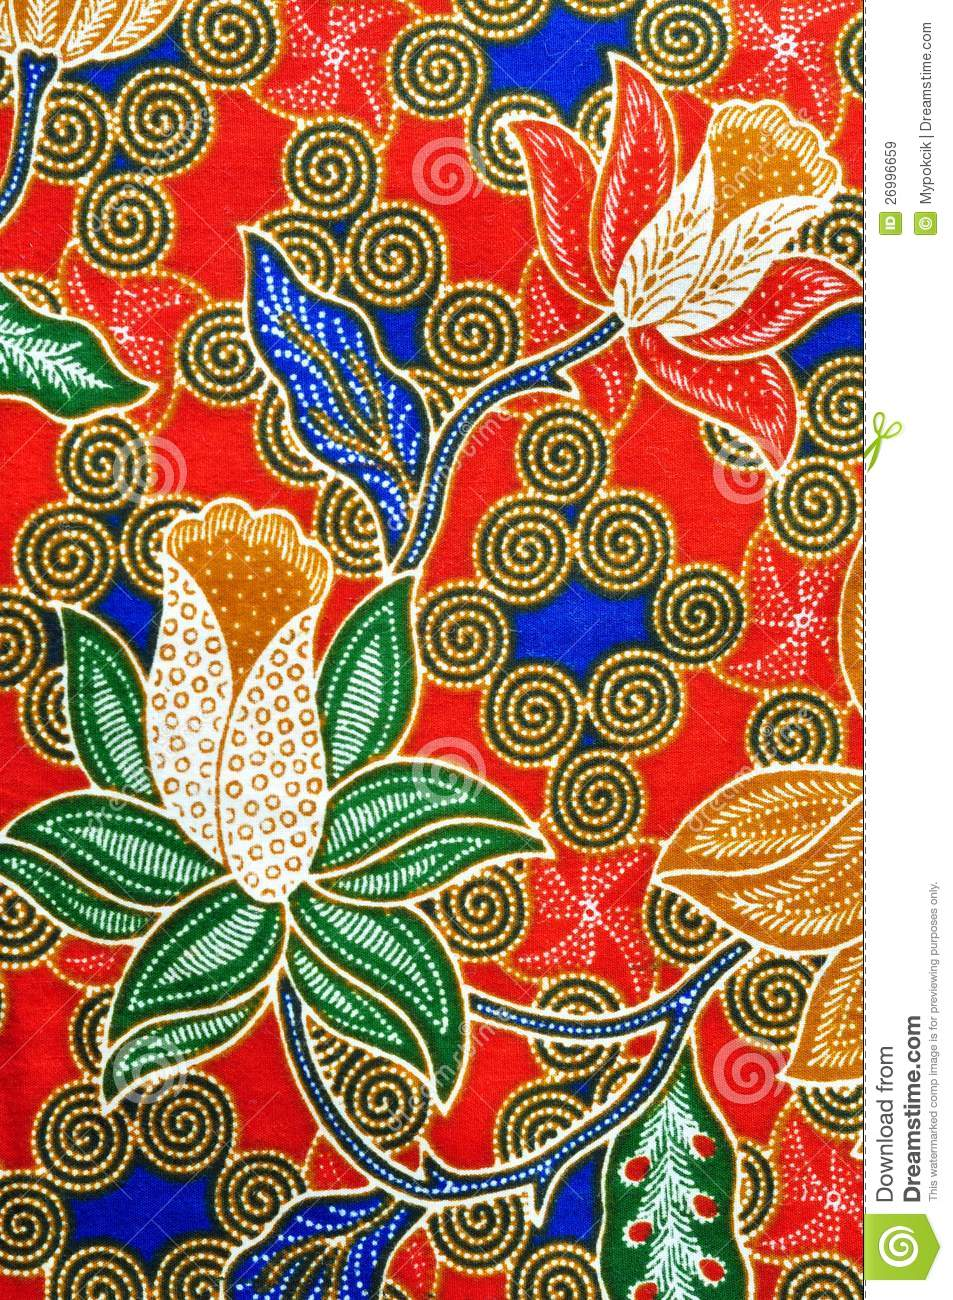 Traditional Batik Design Royalty Free Stock Images